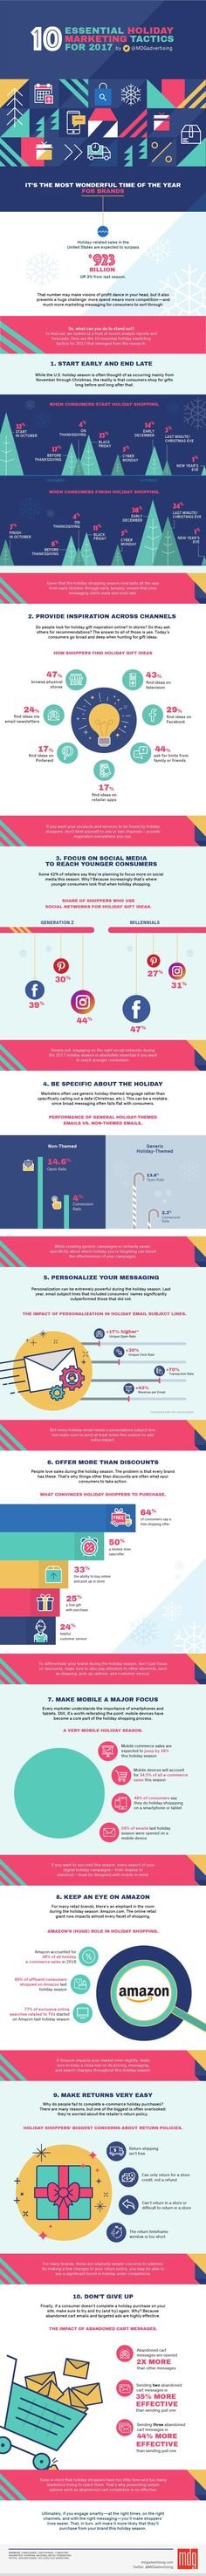 10 Essential Holiday Marketing Tactics for 2017 - #infographic